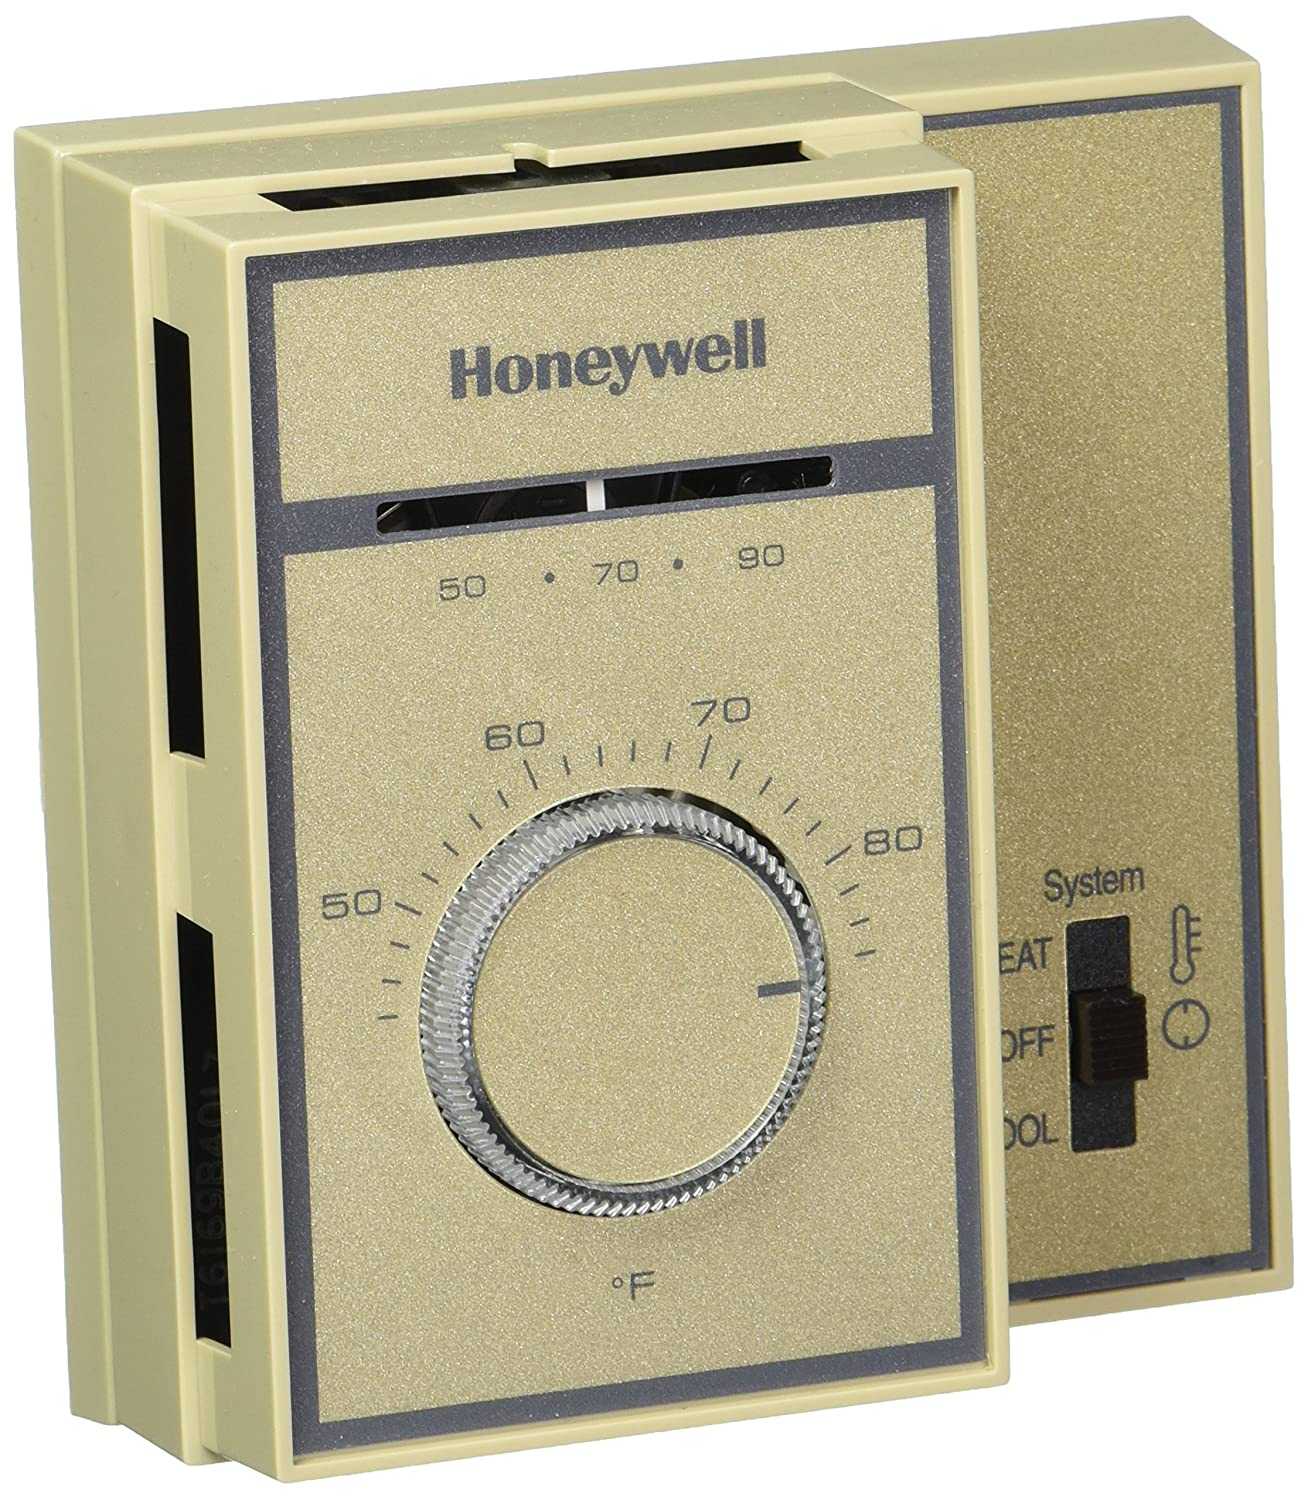 Honeywell T6169B4017 Heat/Cool Thermostat Subbase